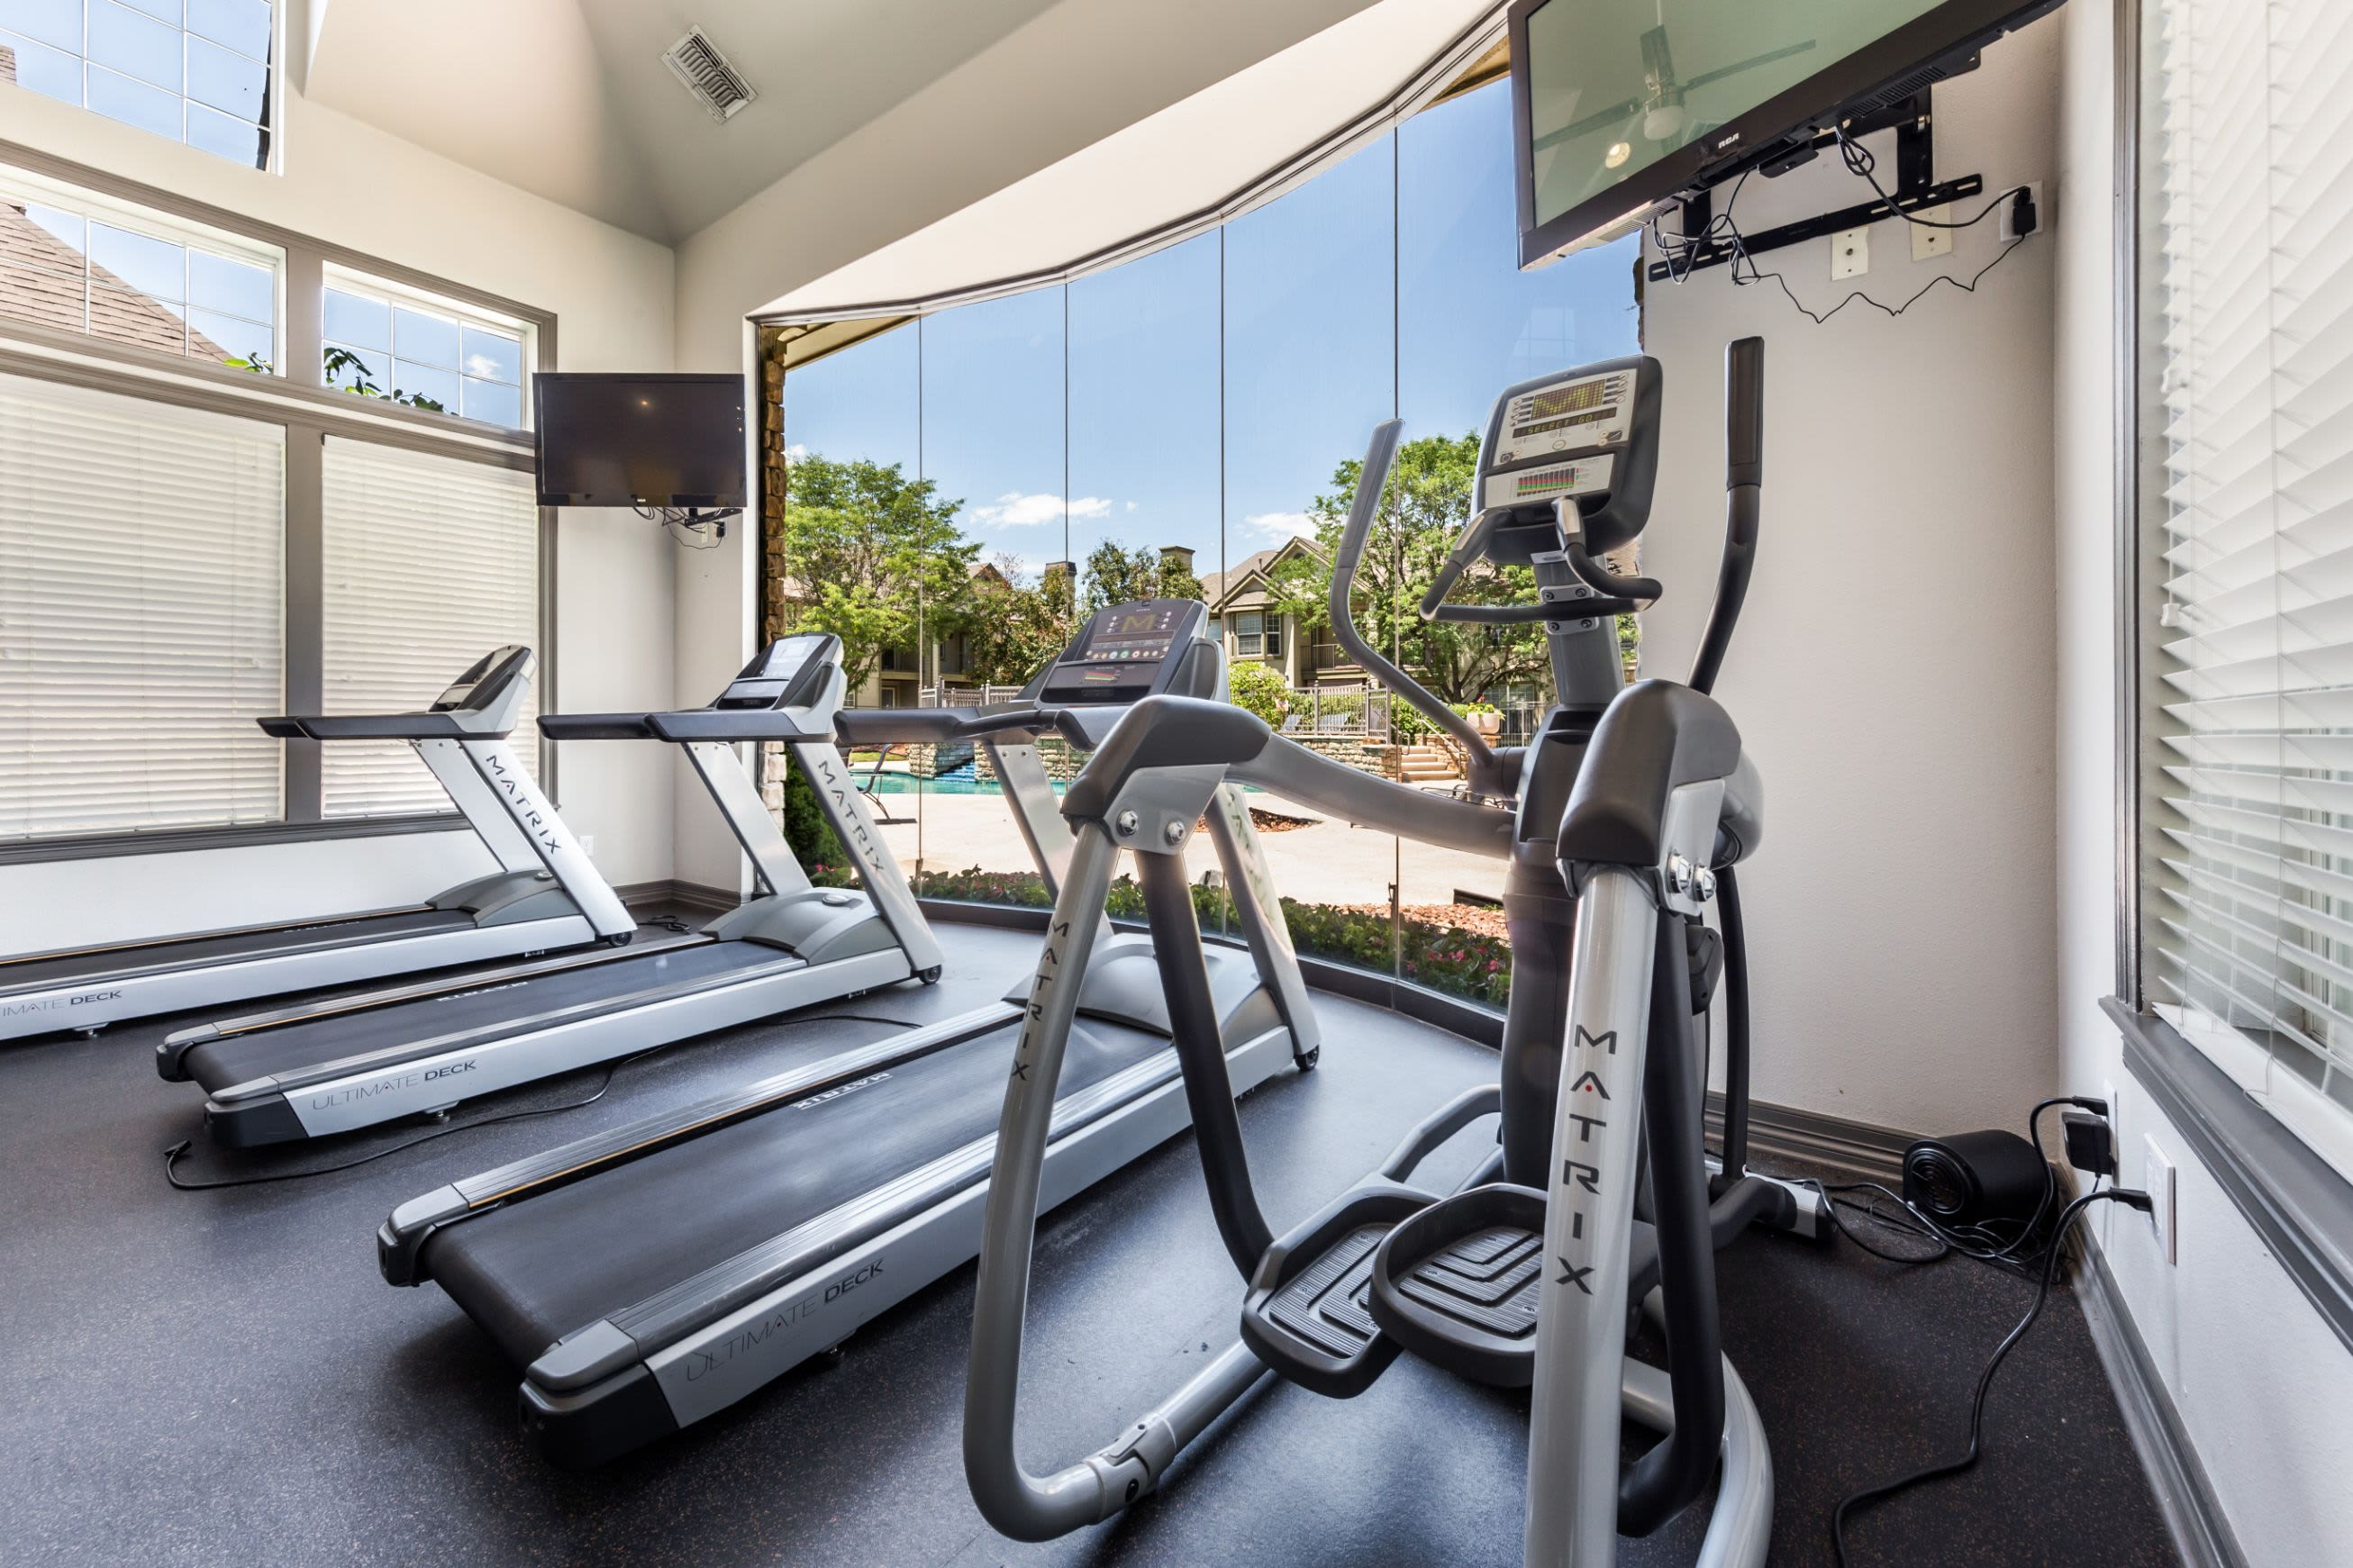 Treadmills in fitness center at Marquis at Town Centre in Broomfield, Colorado